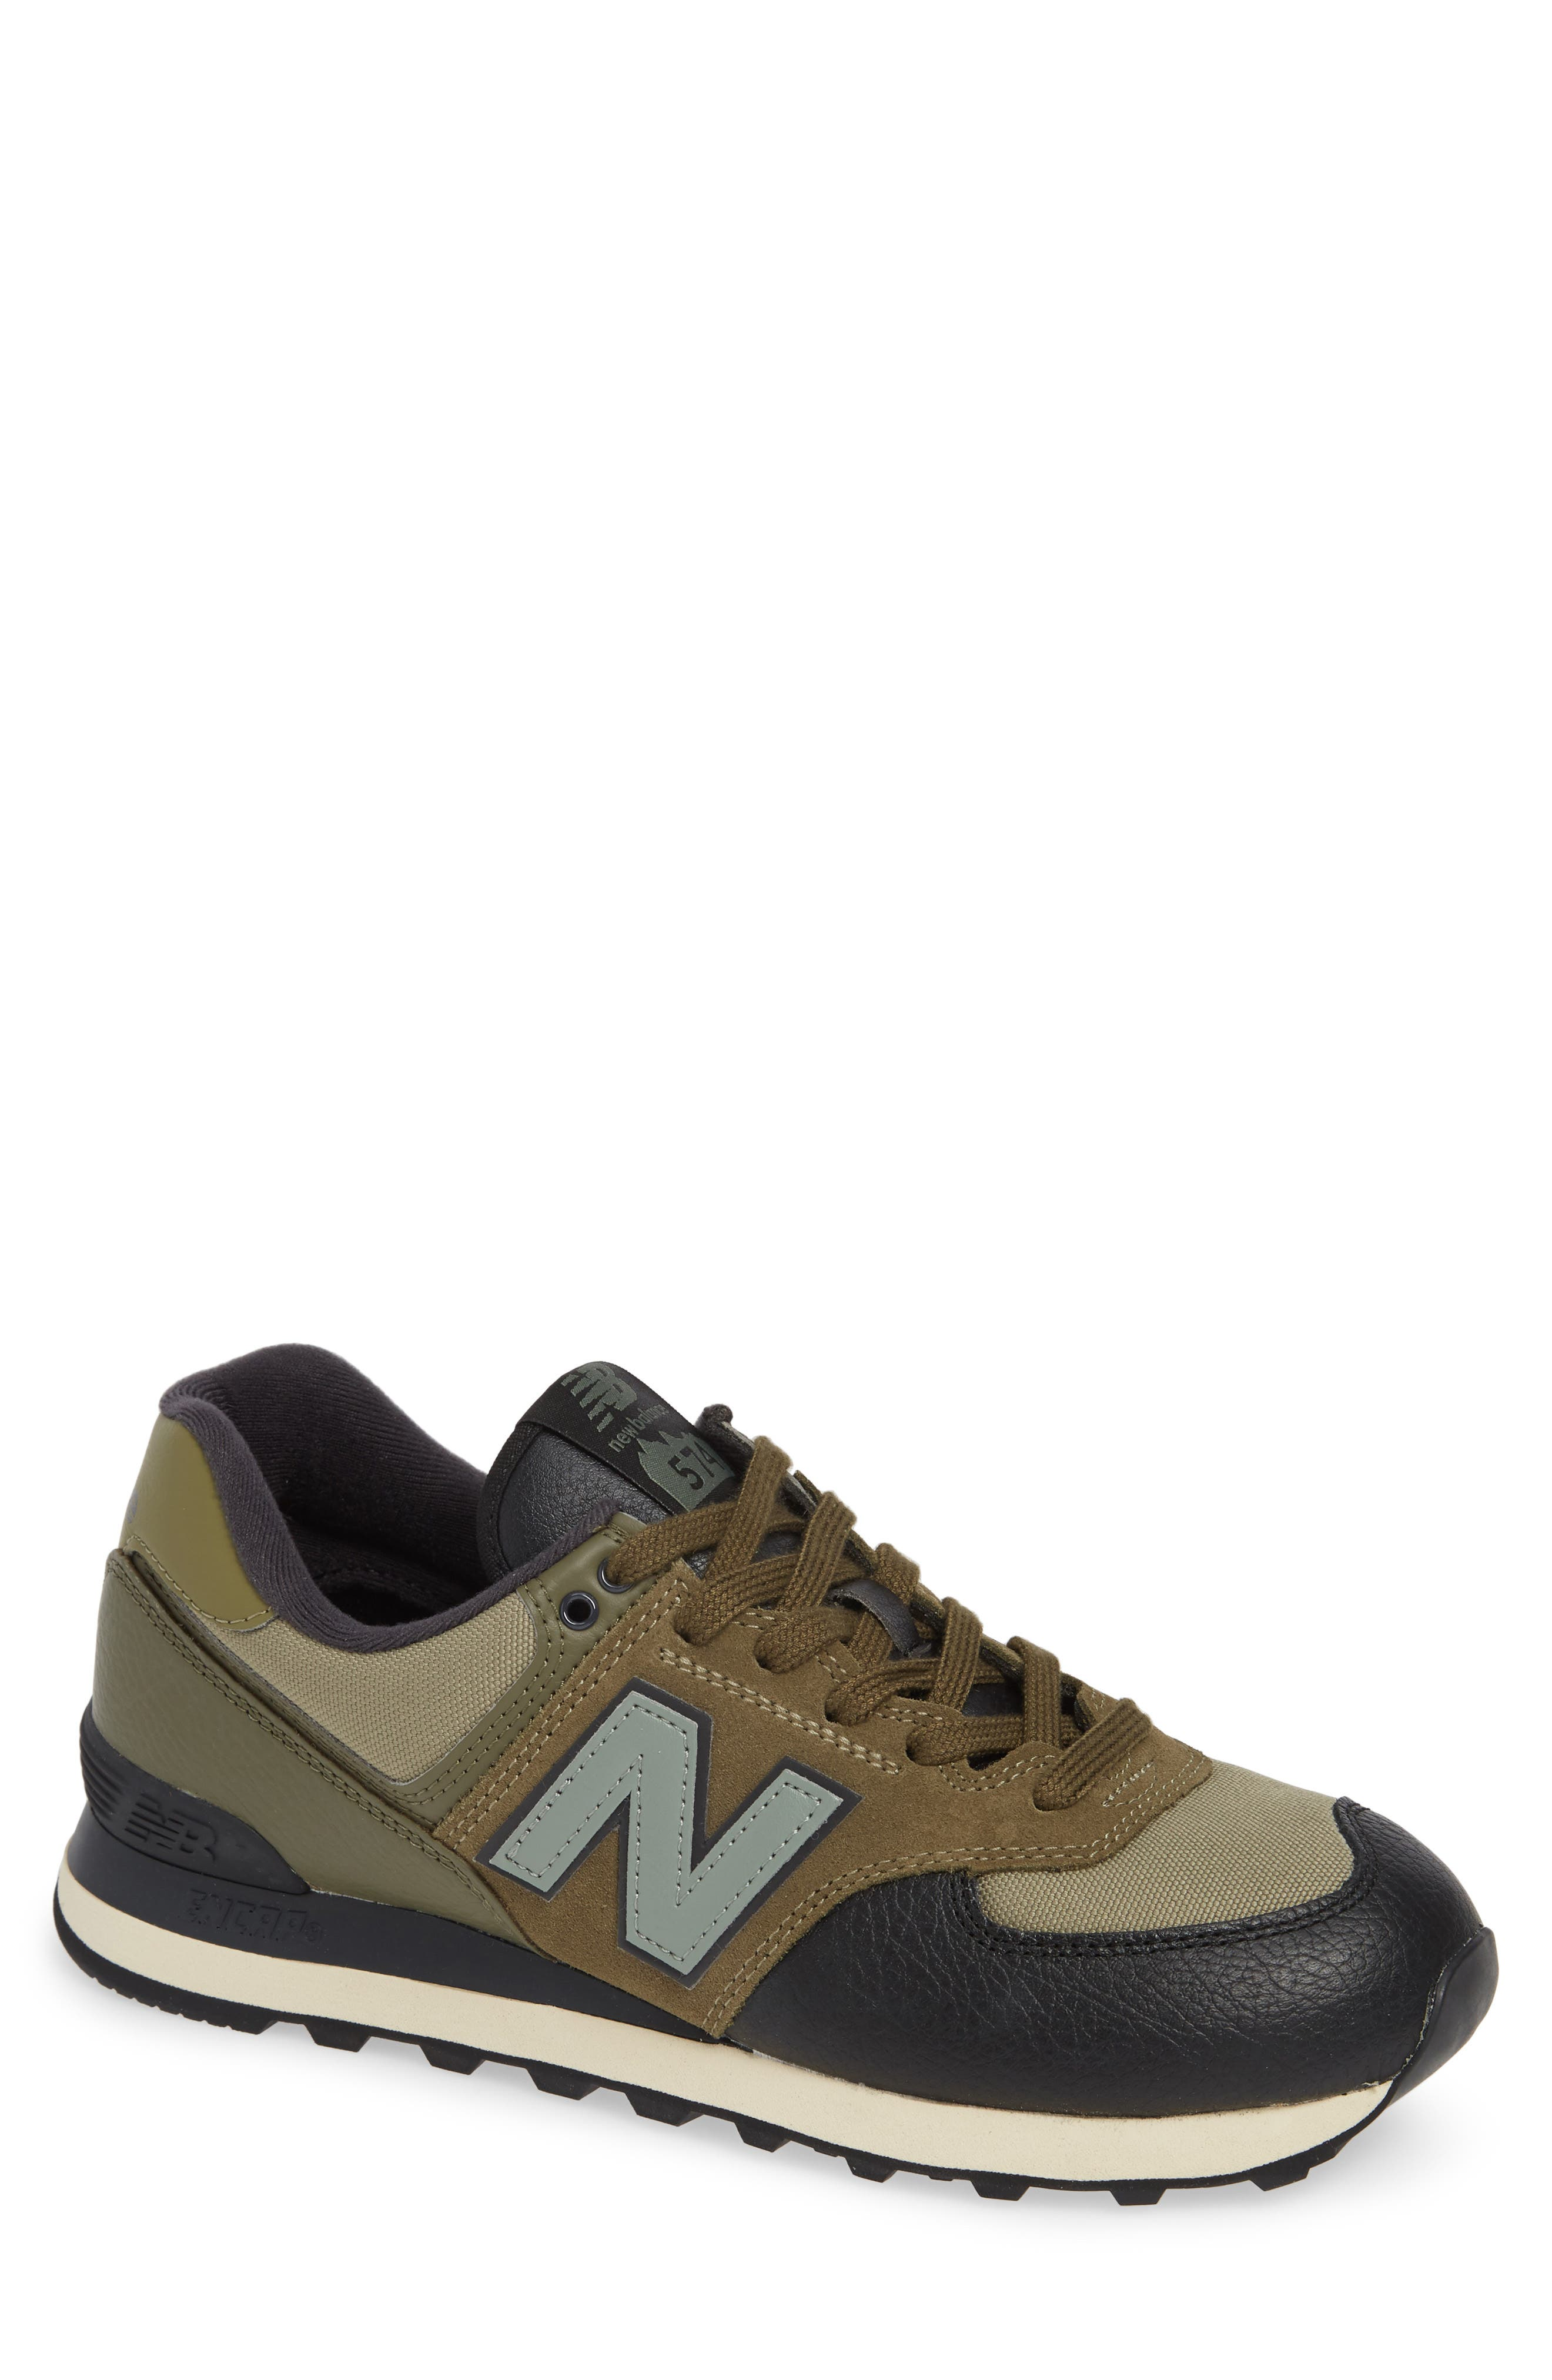 574 Classic Sneaker,                             Main thumbnail 1, color,                             COVERT GREEN SUEDE/ TEXTILE